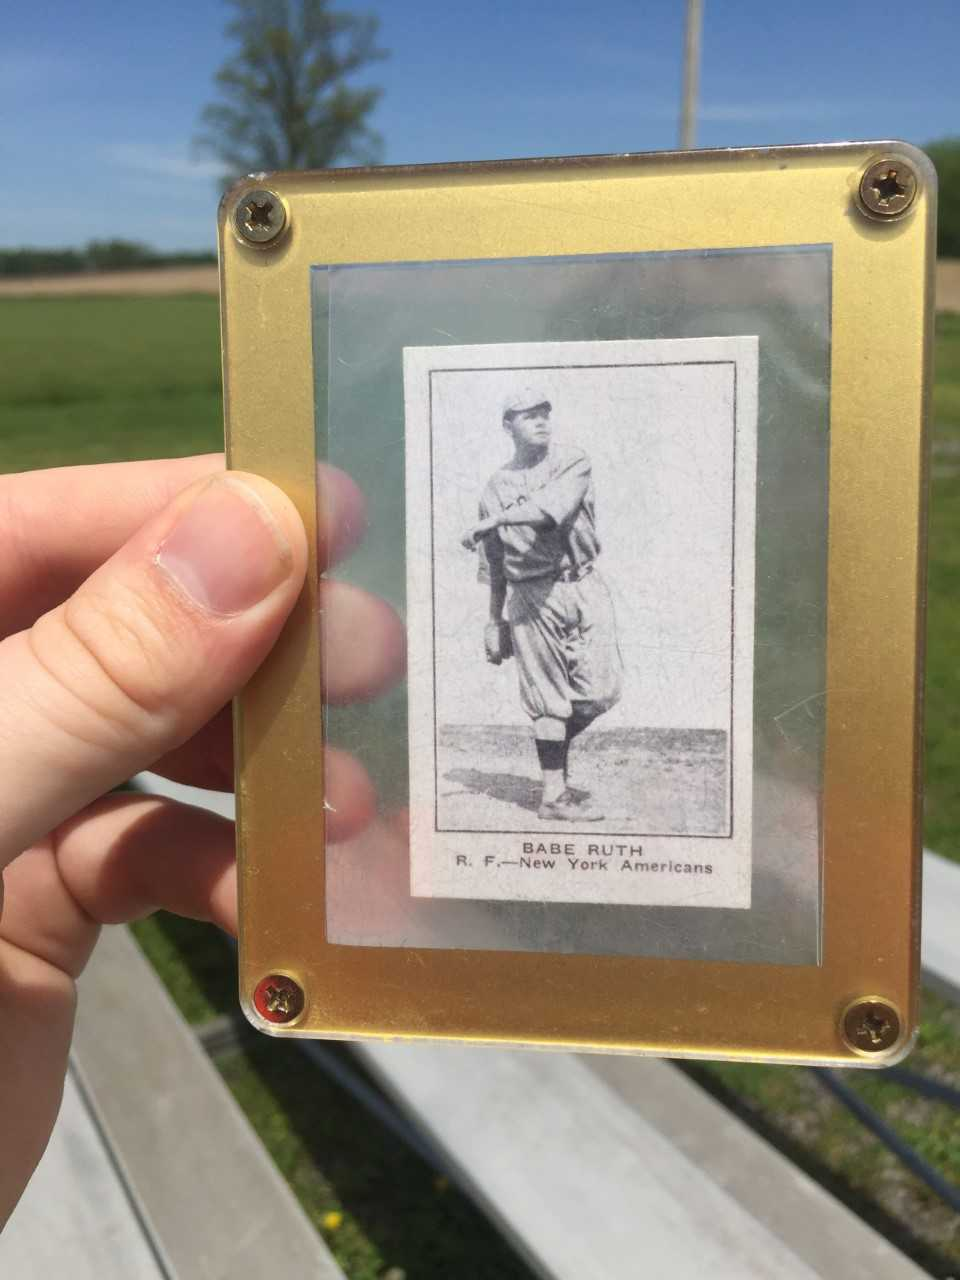 BABE RUTH BASEBALL CARD_1558989526735.jpeg.jpg